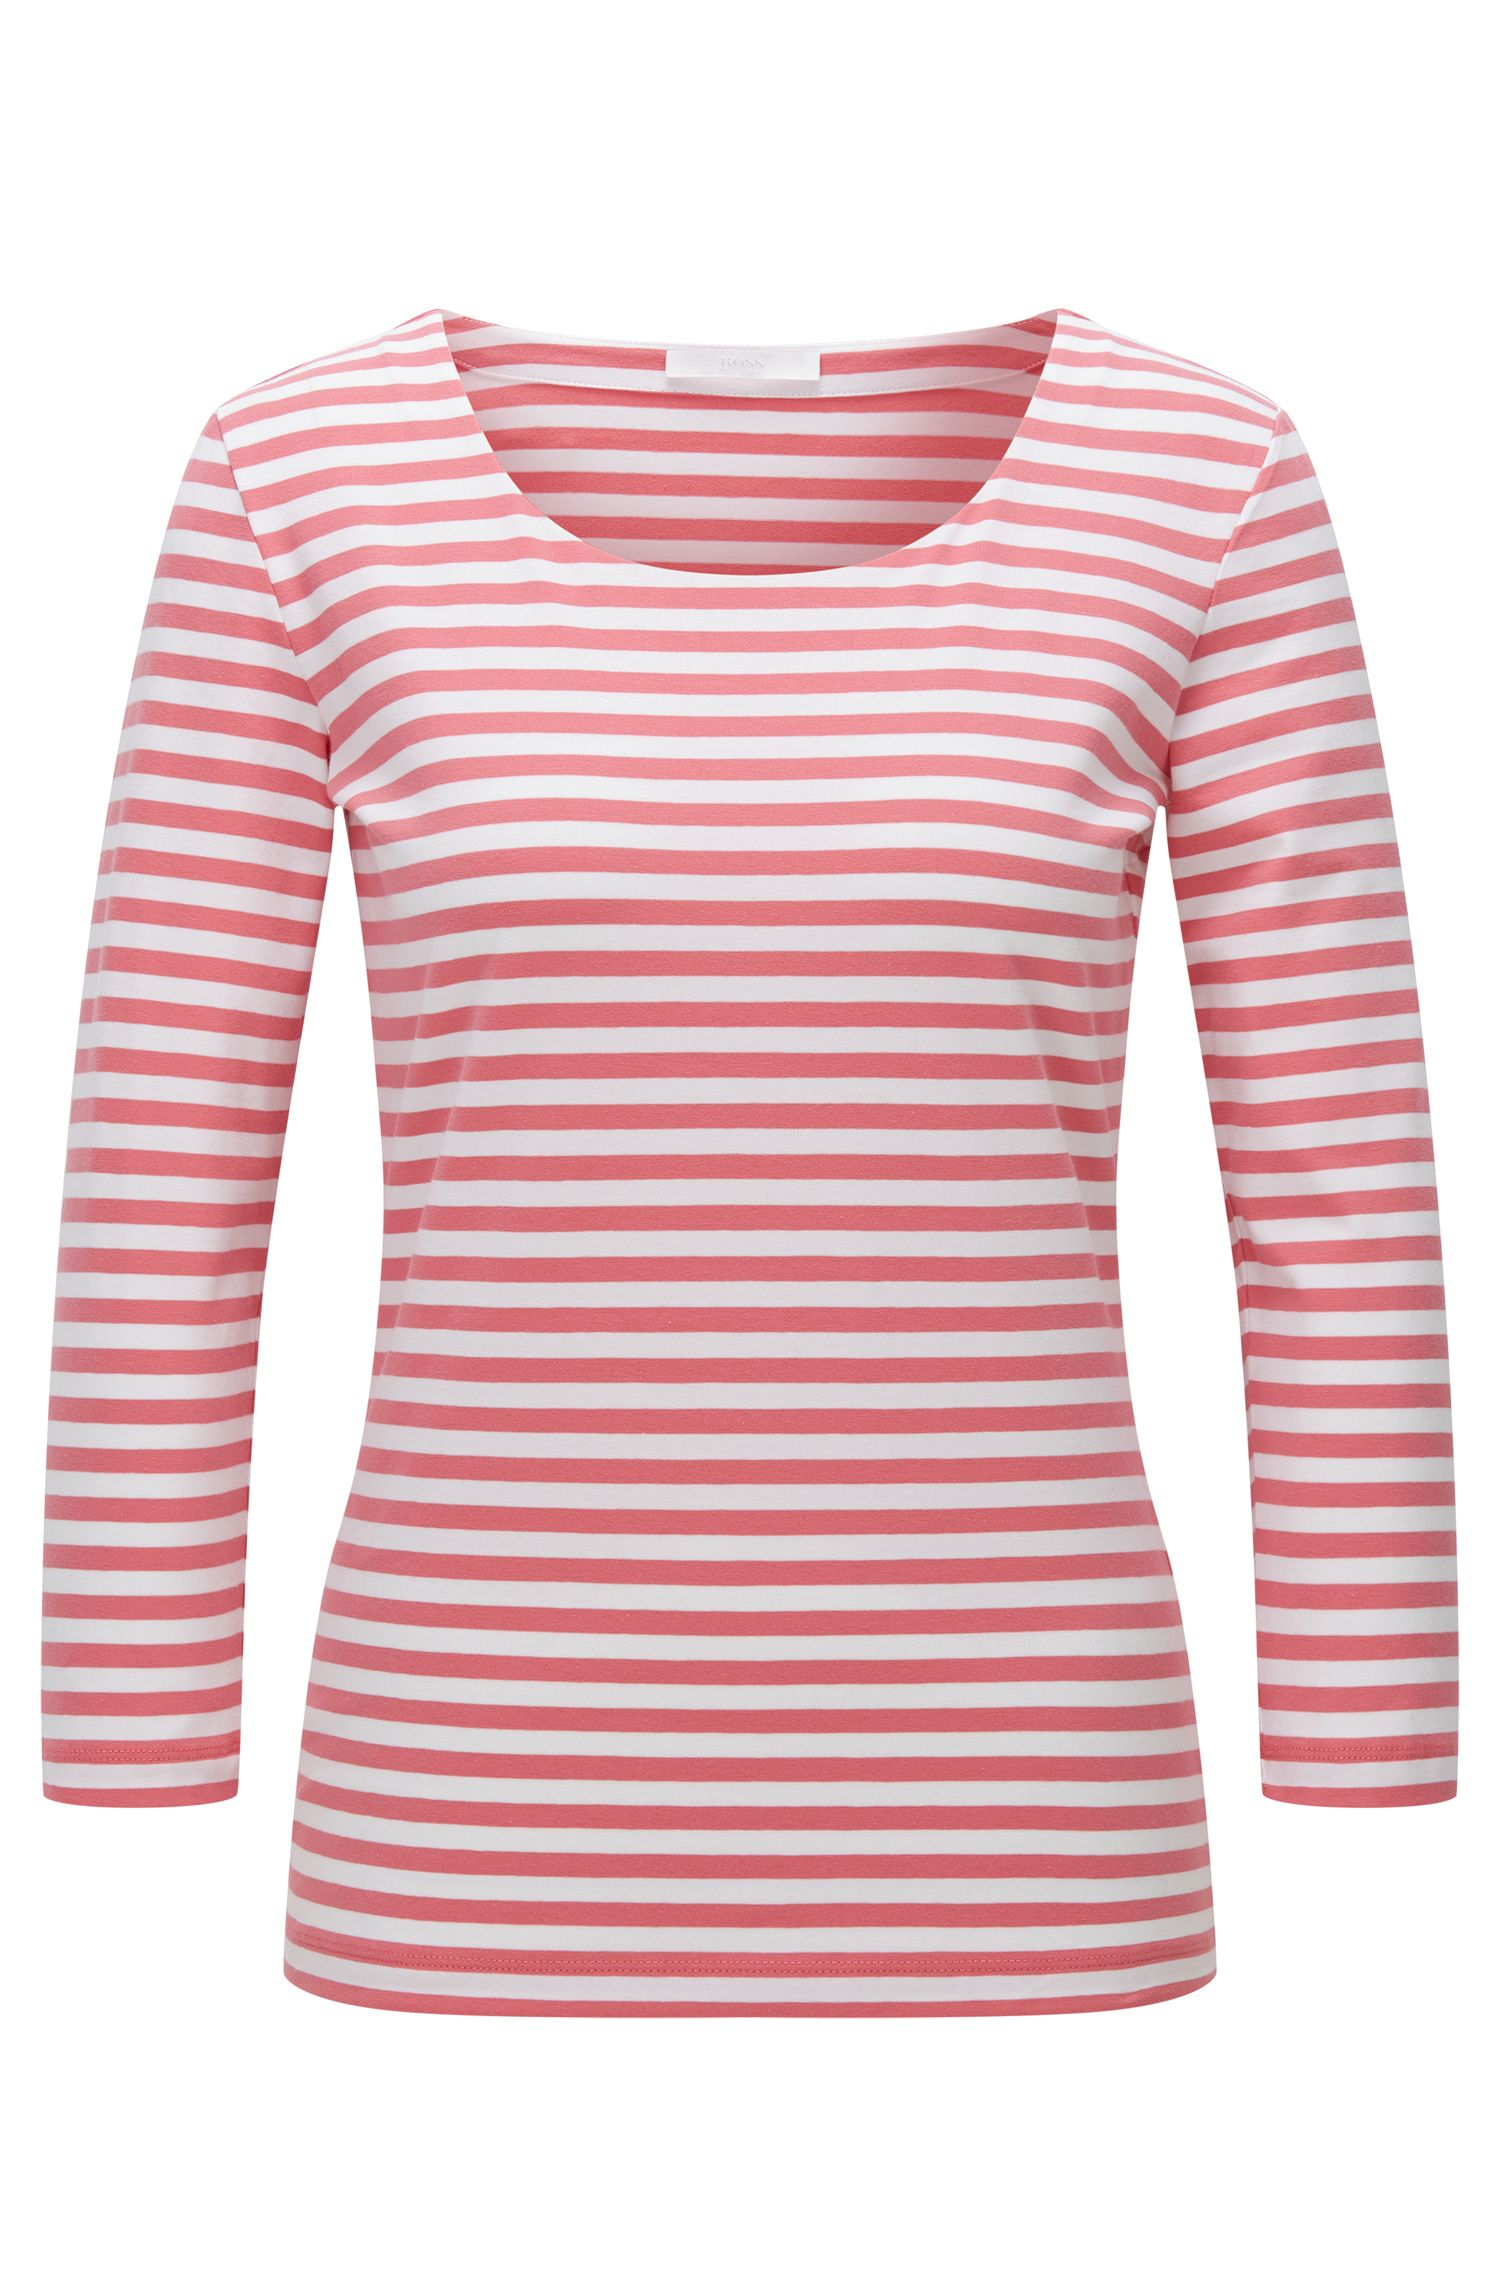 Regular-fit T-shirt in stretch cotton single jersey